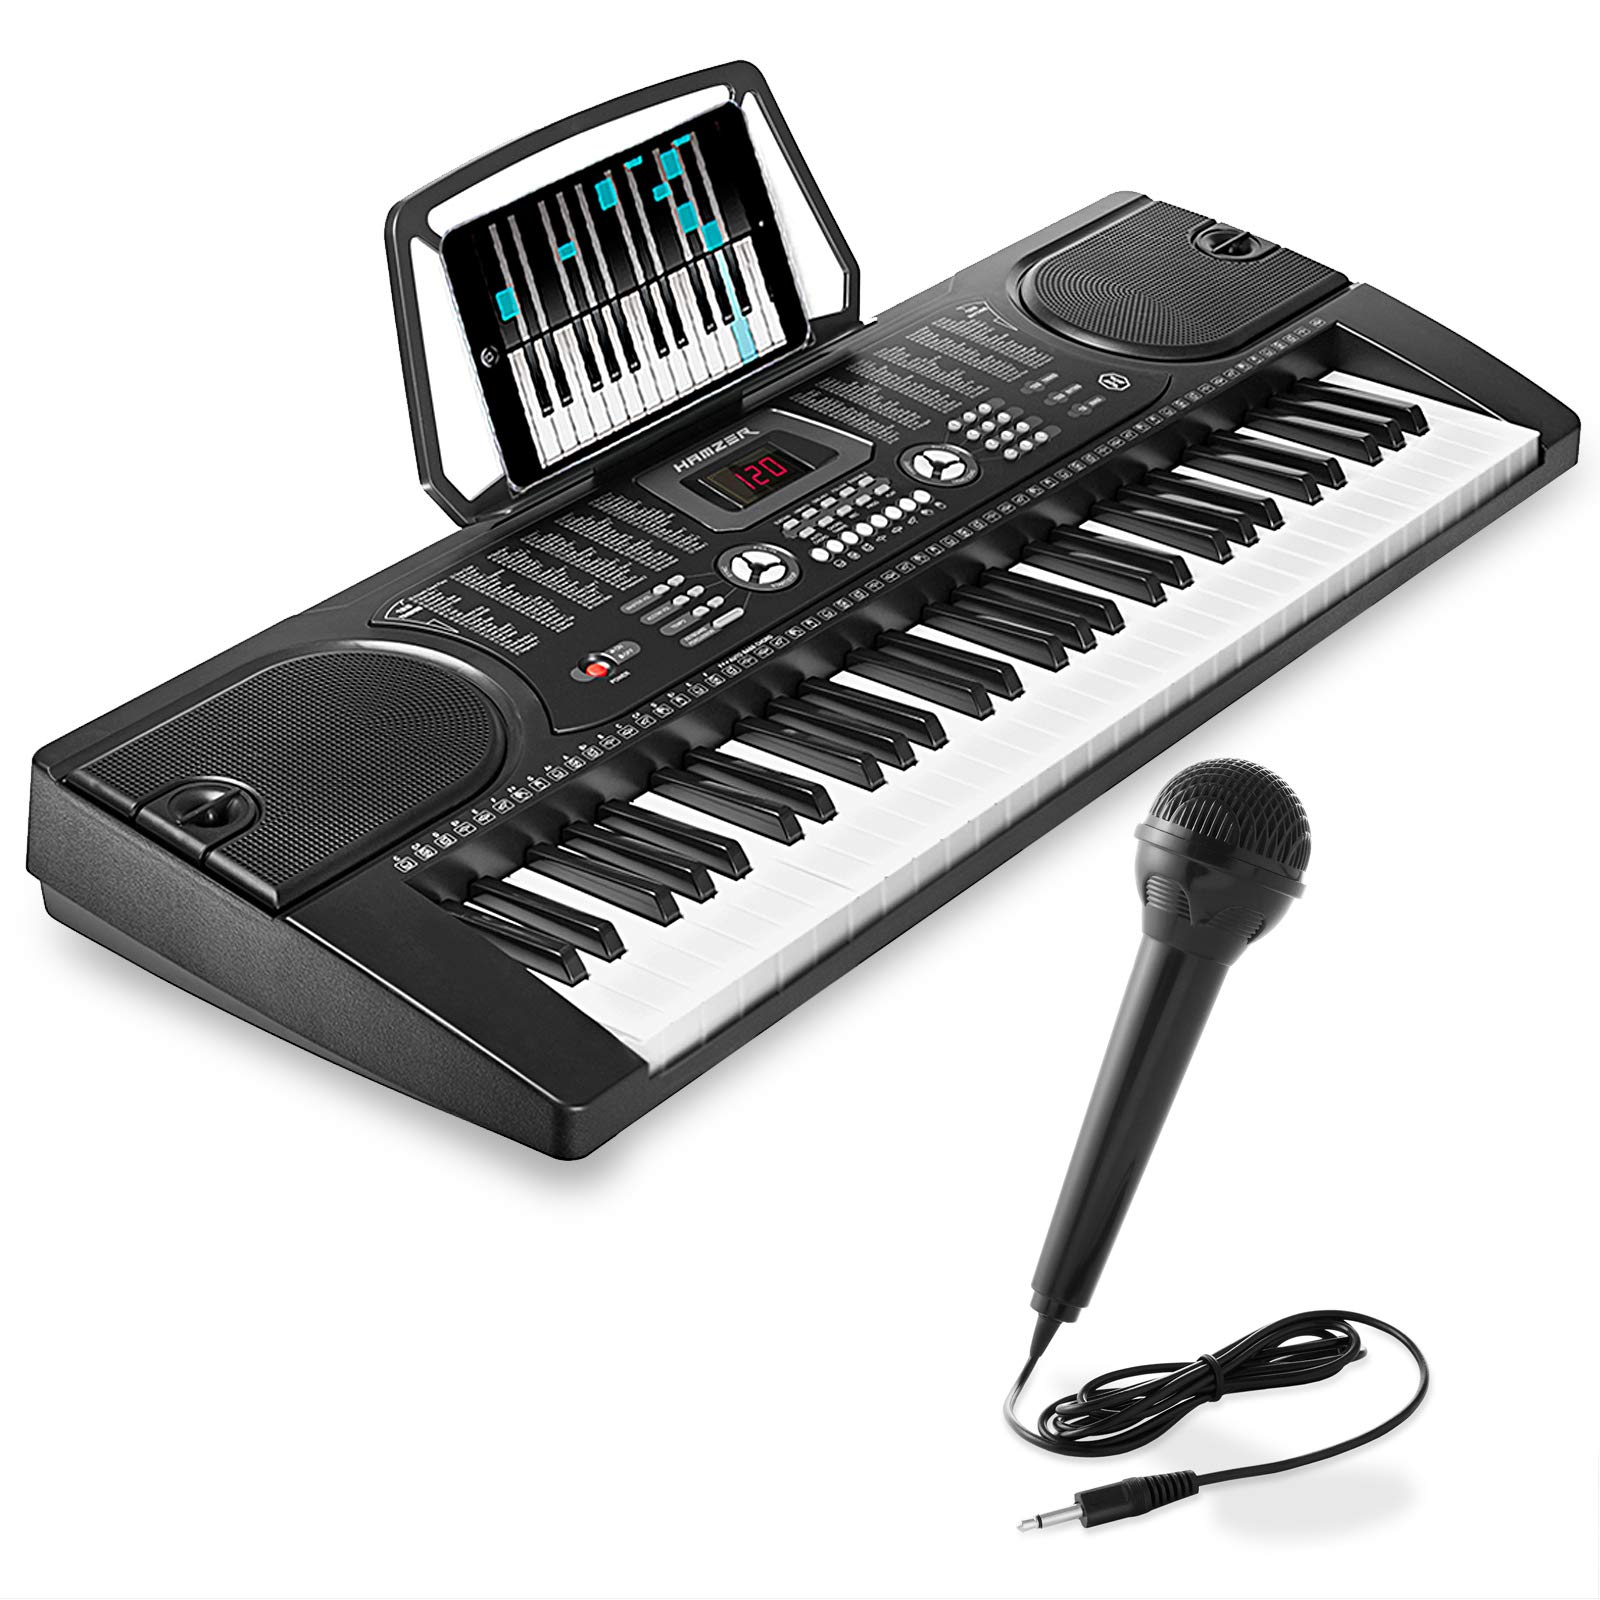 Hamzer 61-Key Digital Music Piano Keyboard - Portable Electronic Musical Instrument - with Microphone and Sticker Sheet by Hamzer